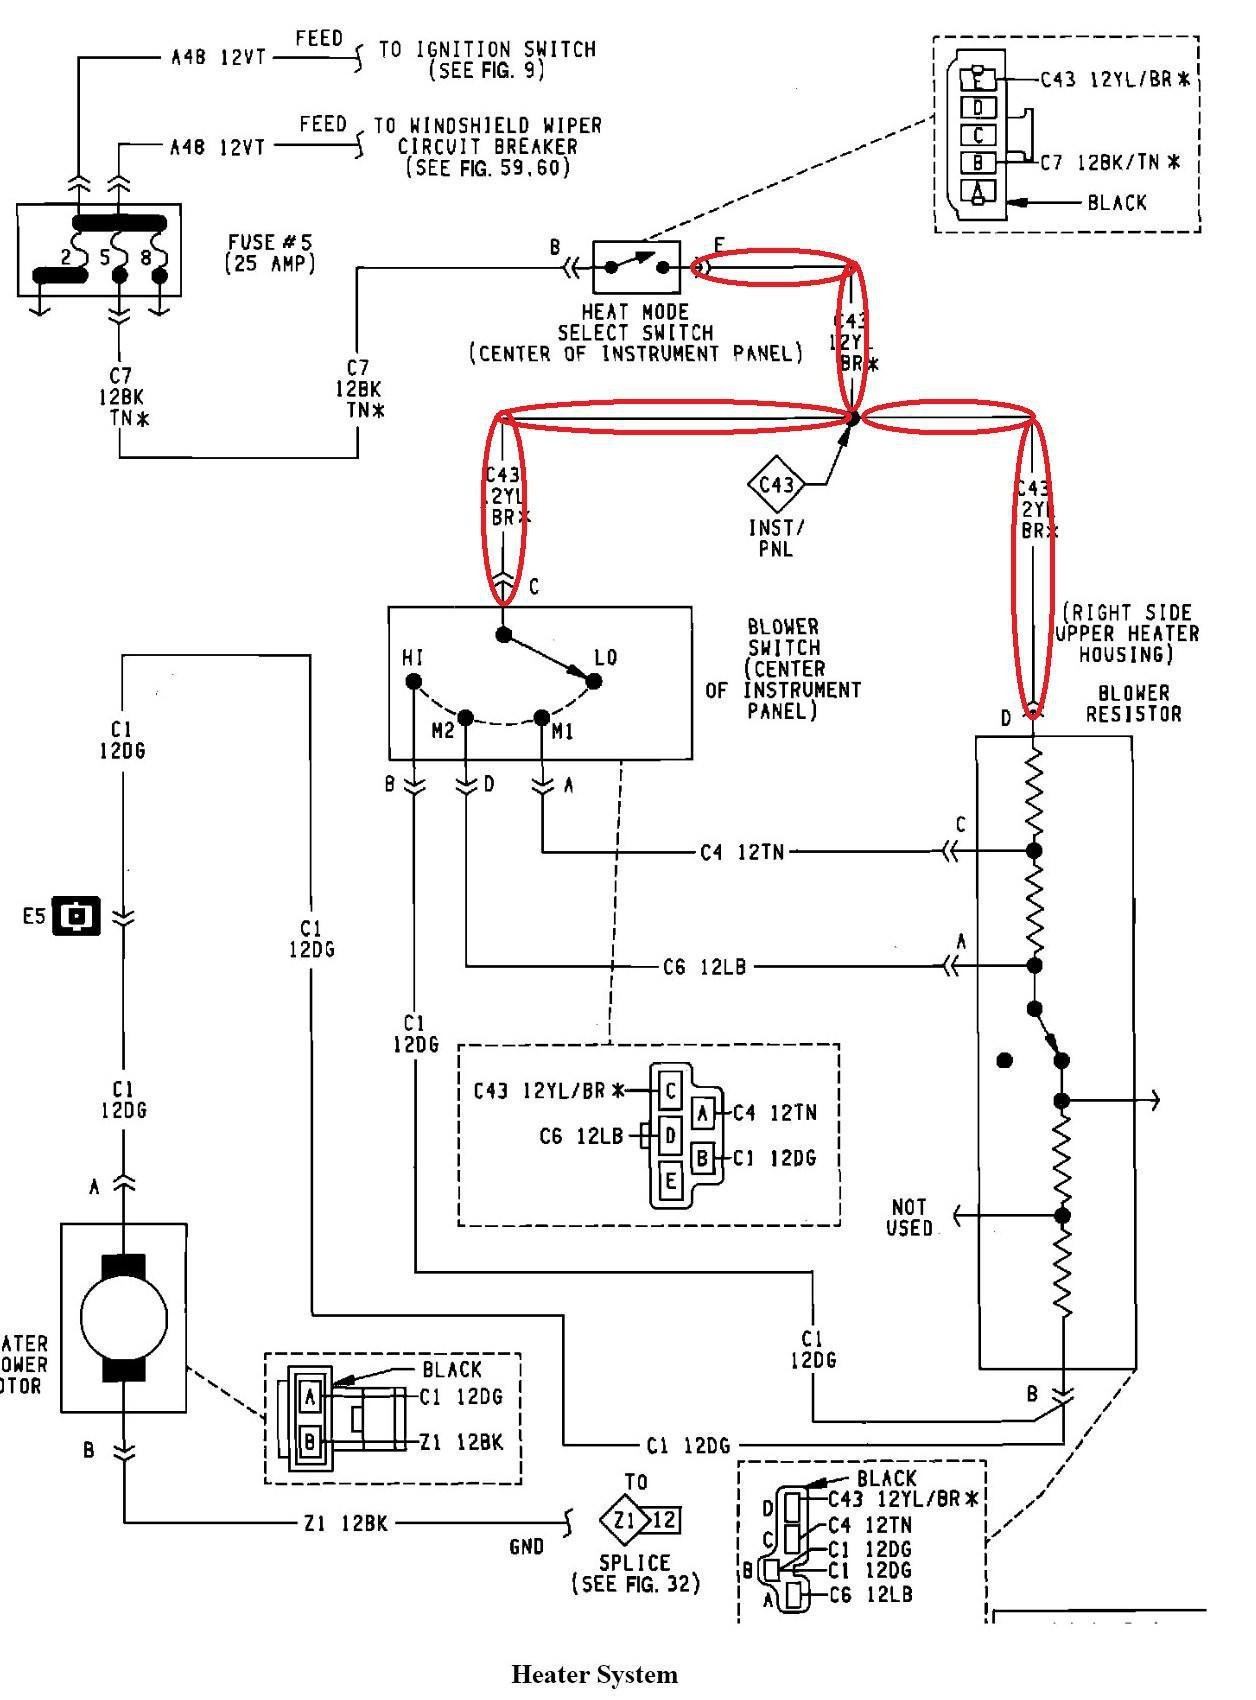 hight resolution of voltage reducer schematic wiring diagram technicwrg 6251 club car 48v wiring diagram voltage reducer